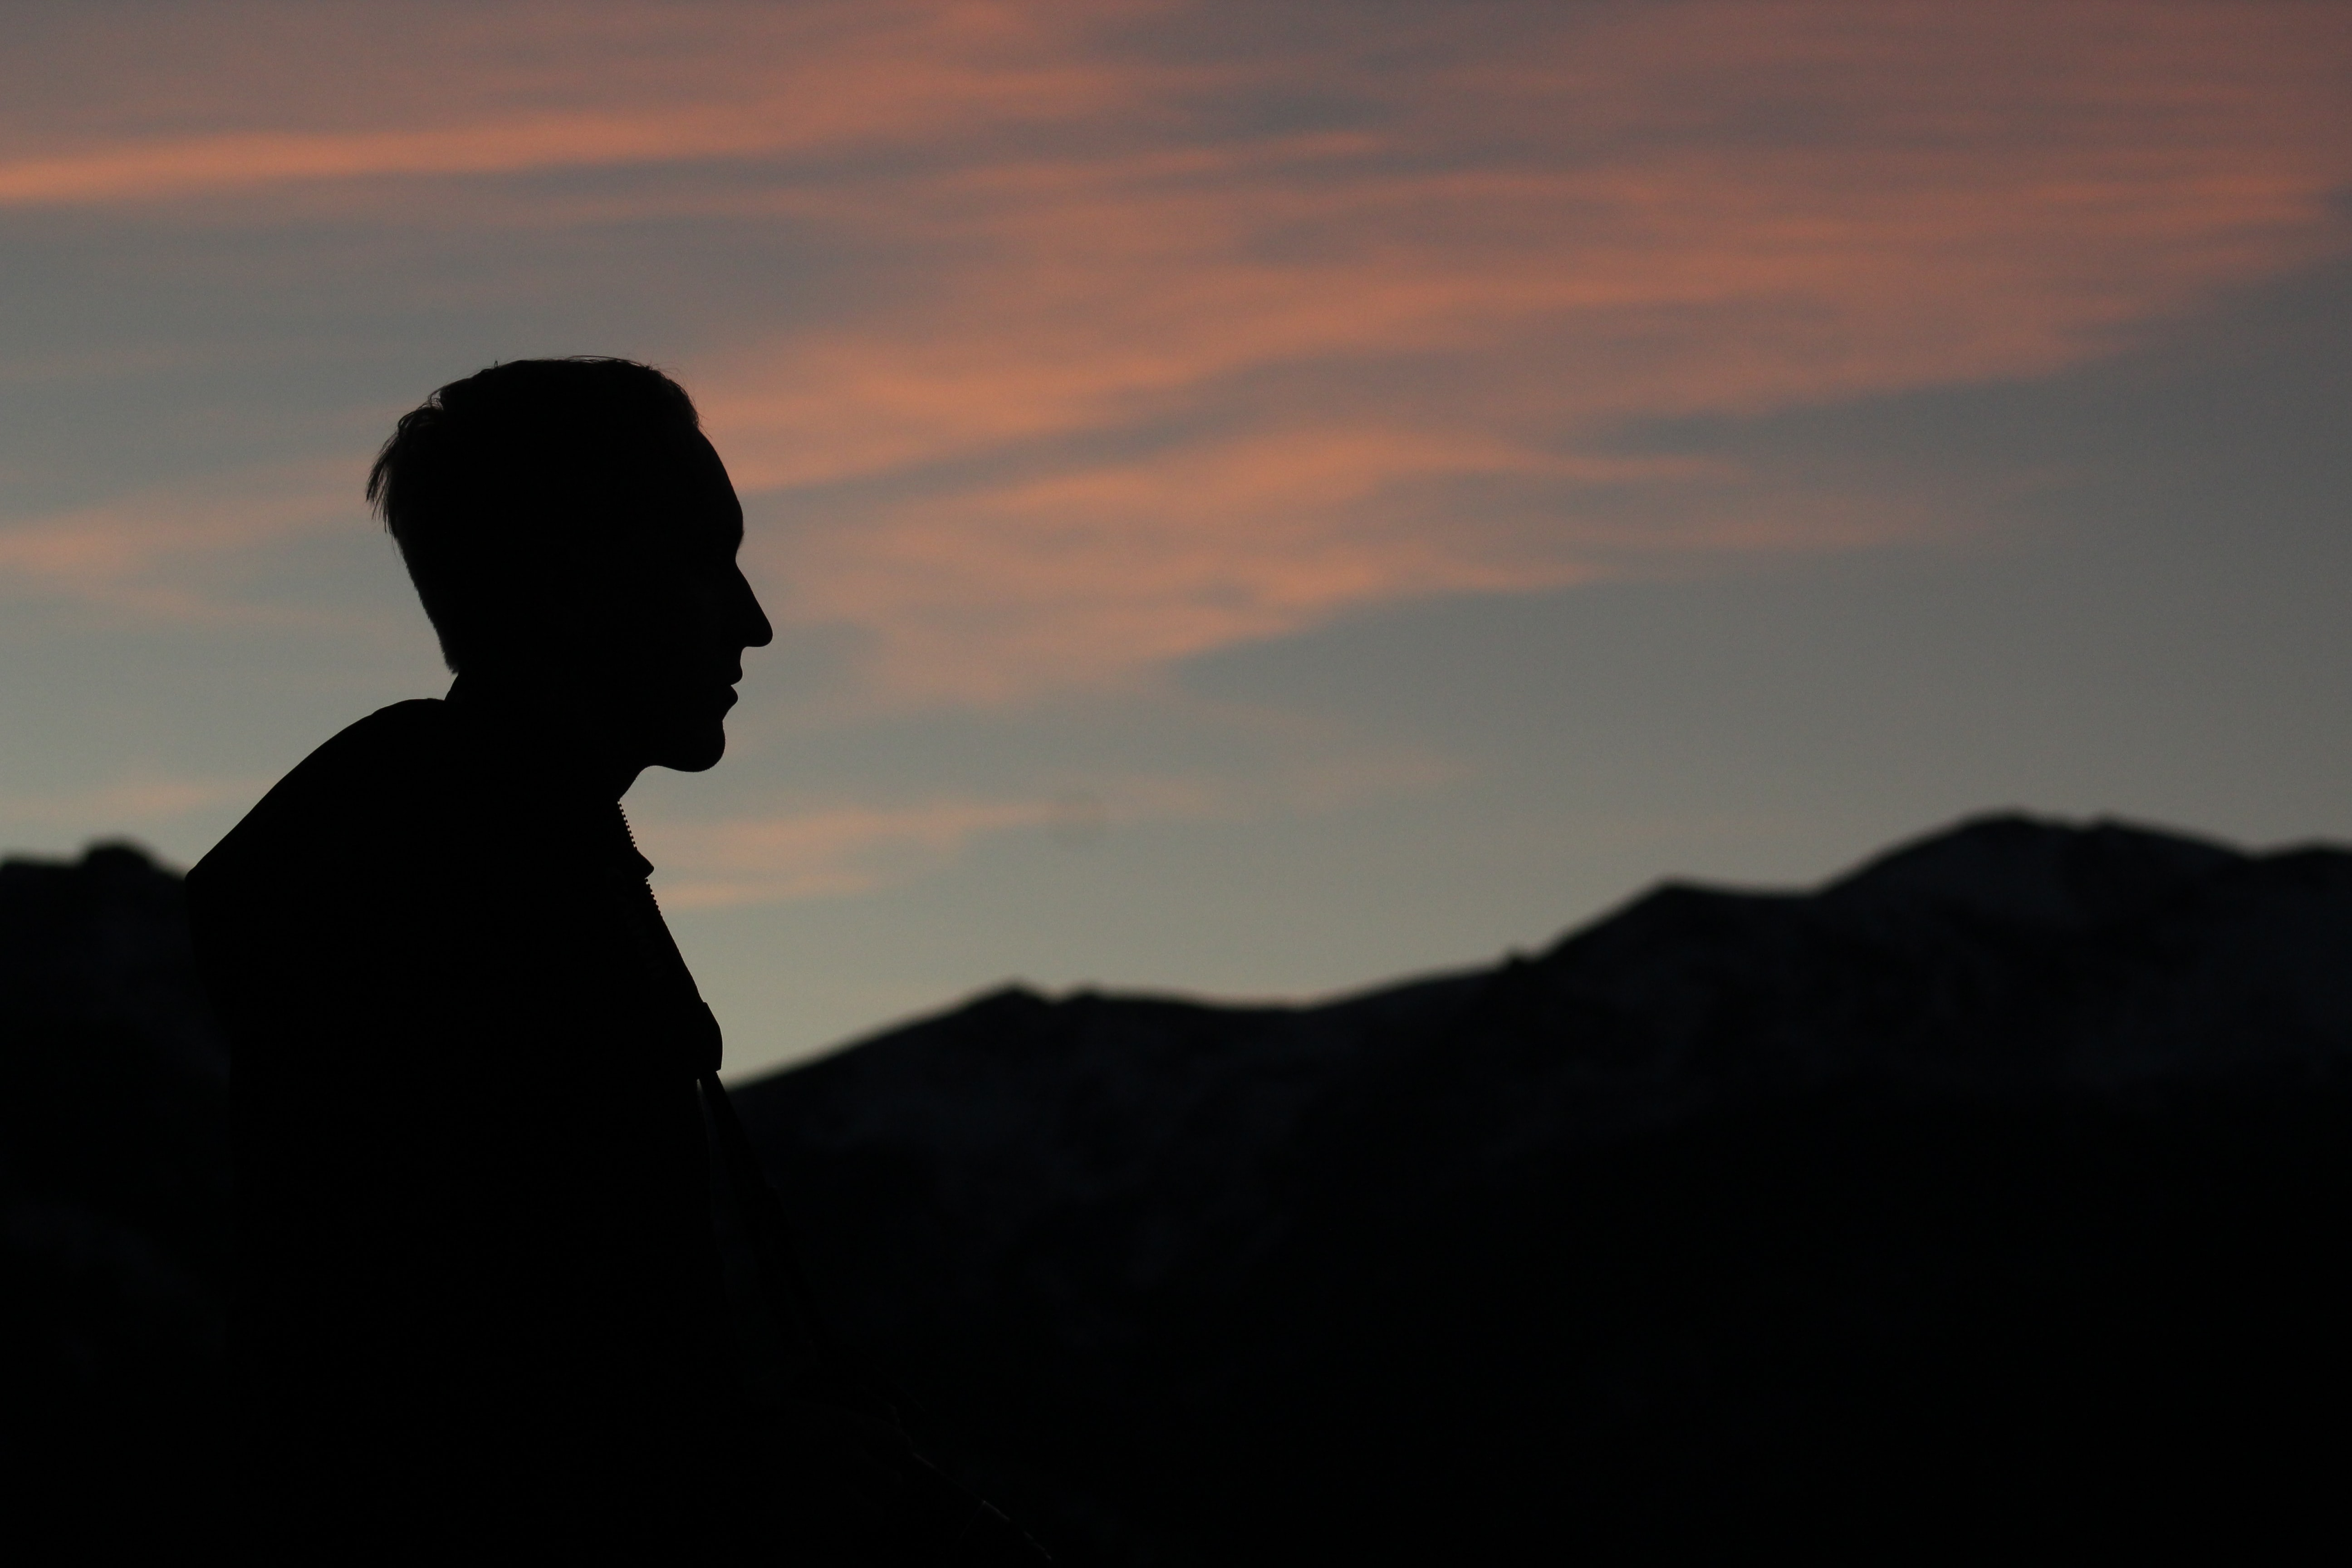 silhouette of man during twilight